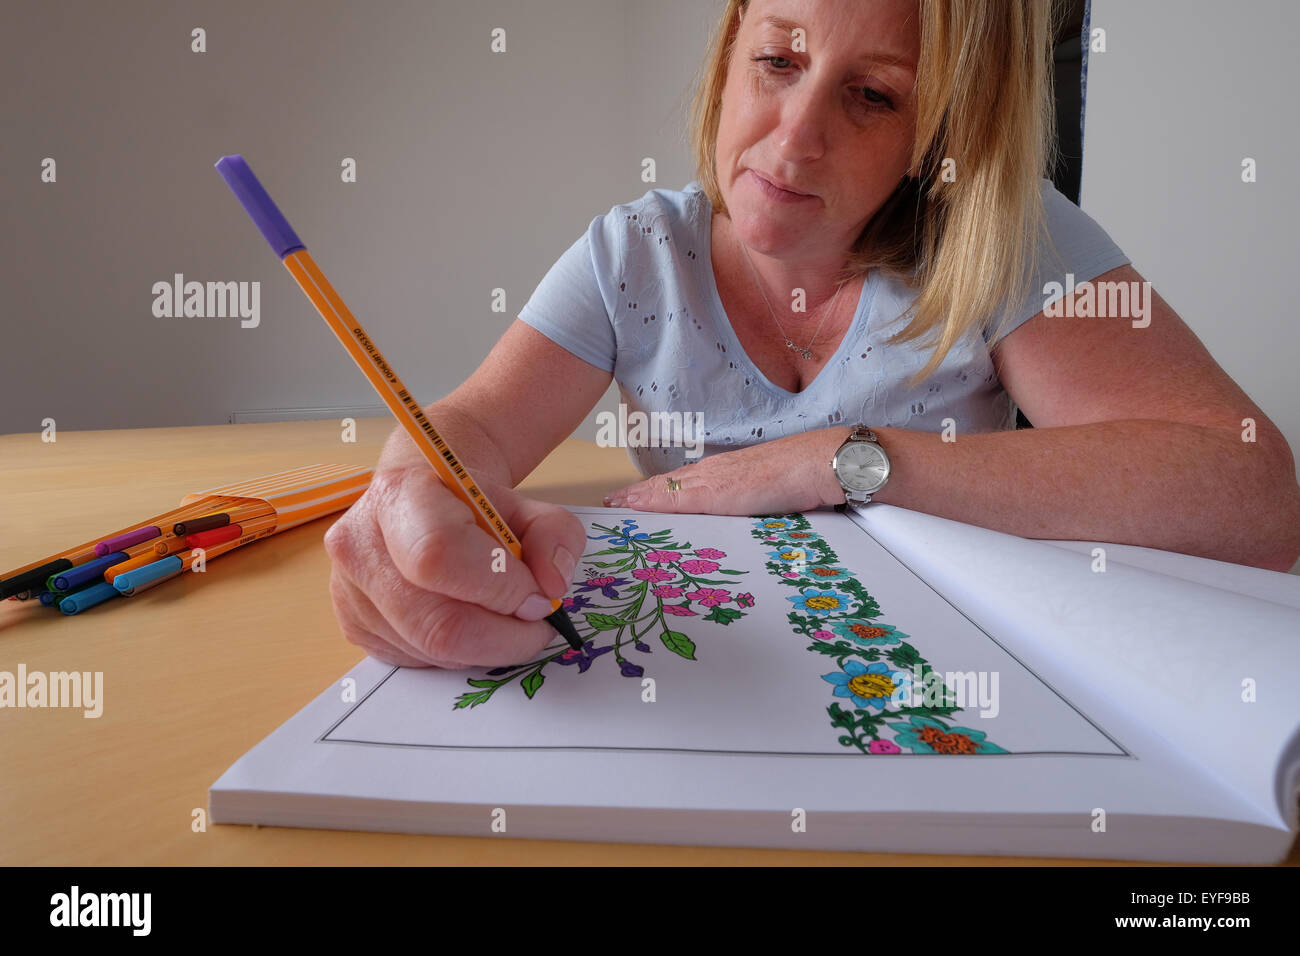 An adult woman colouring in a vintage design colouring in book, a new trend in relaxation for adults - Stock Image